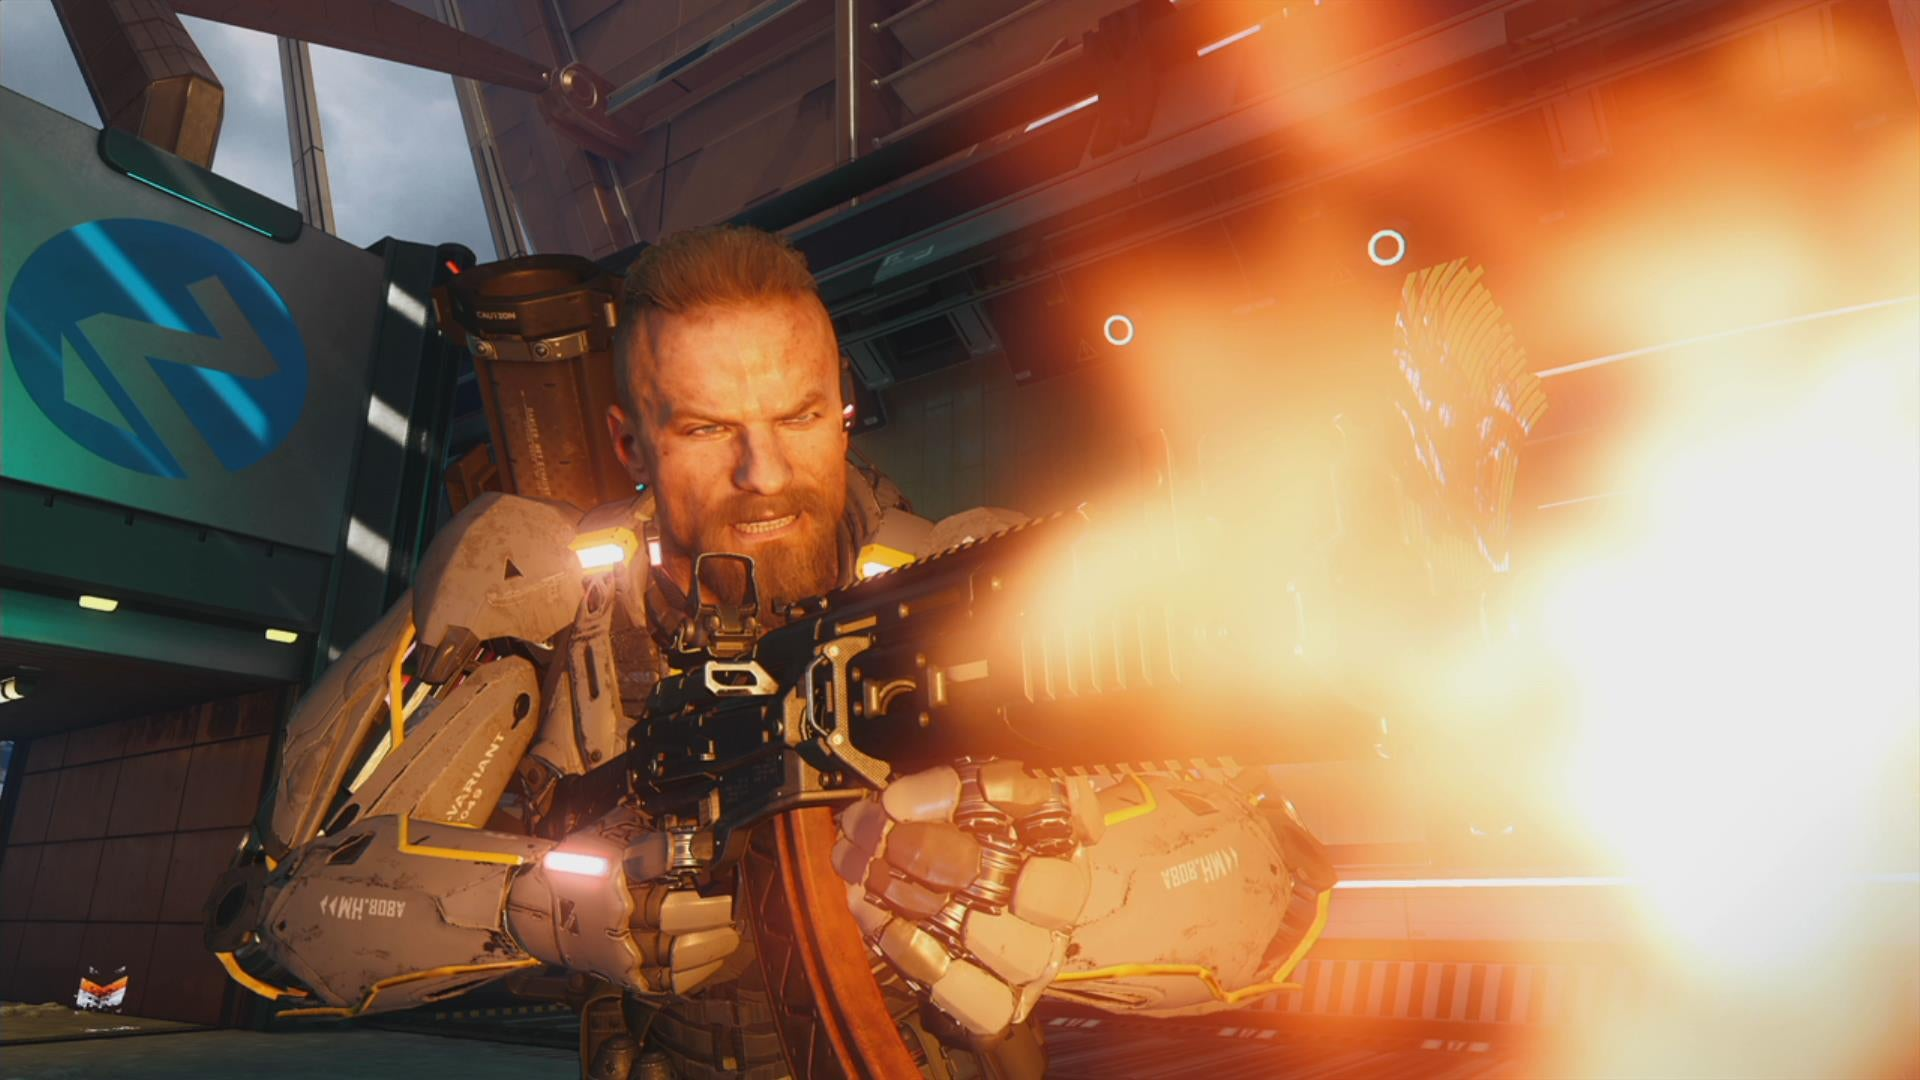 My Favourite Black Ops III Feature So Far Is Theatre Mode